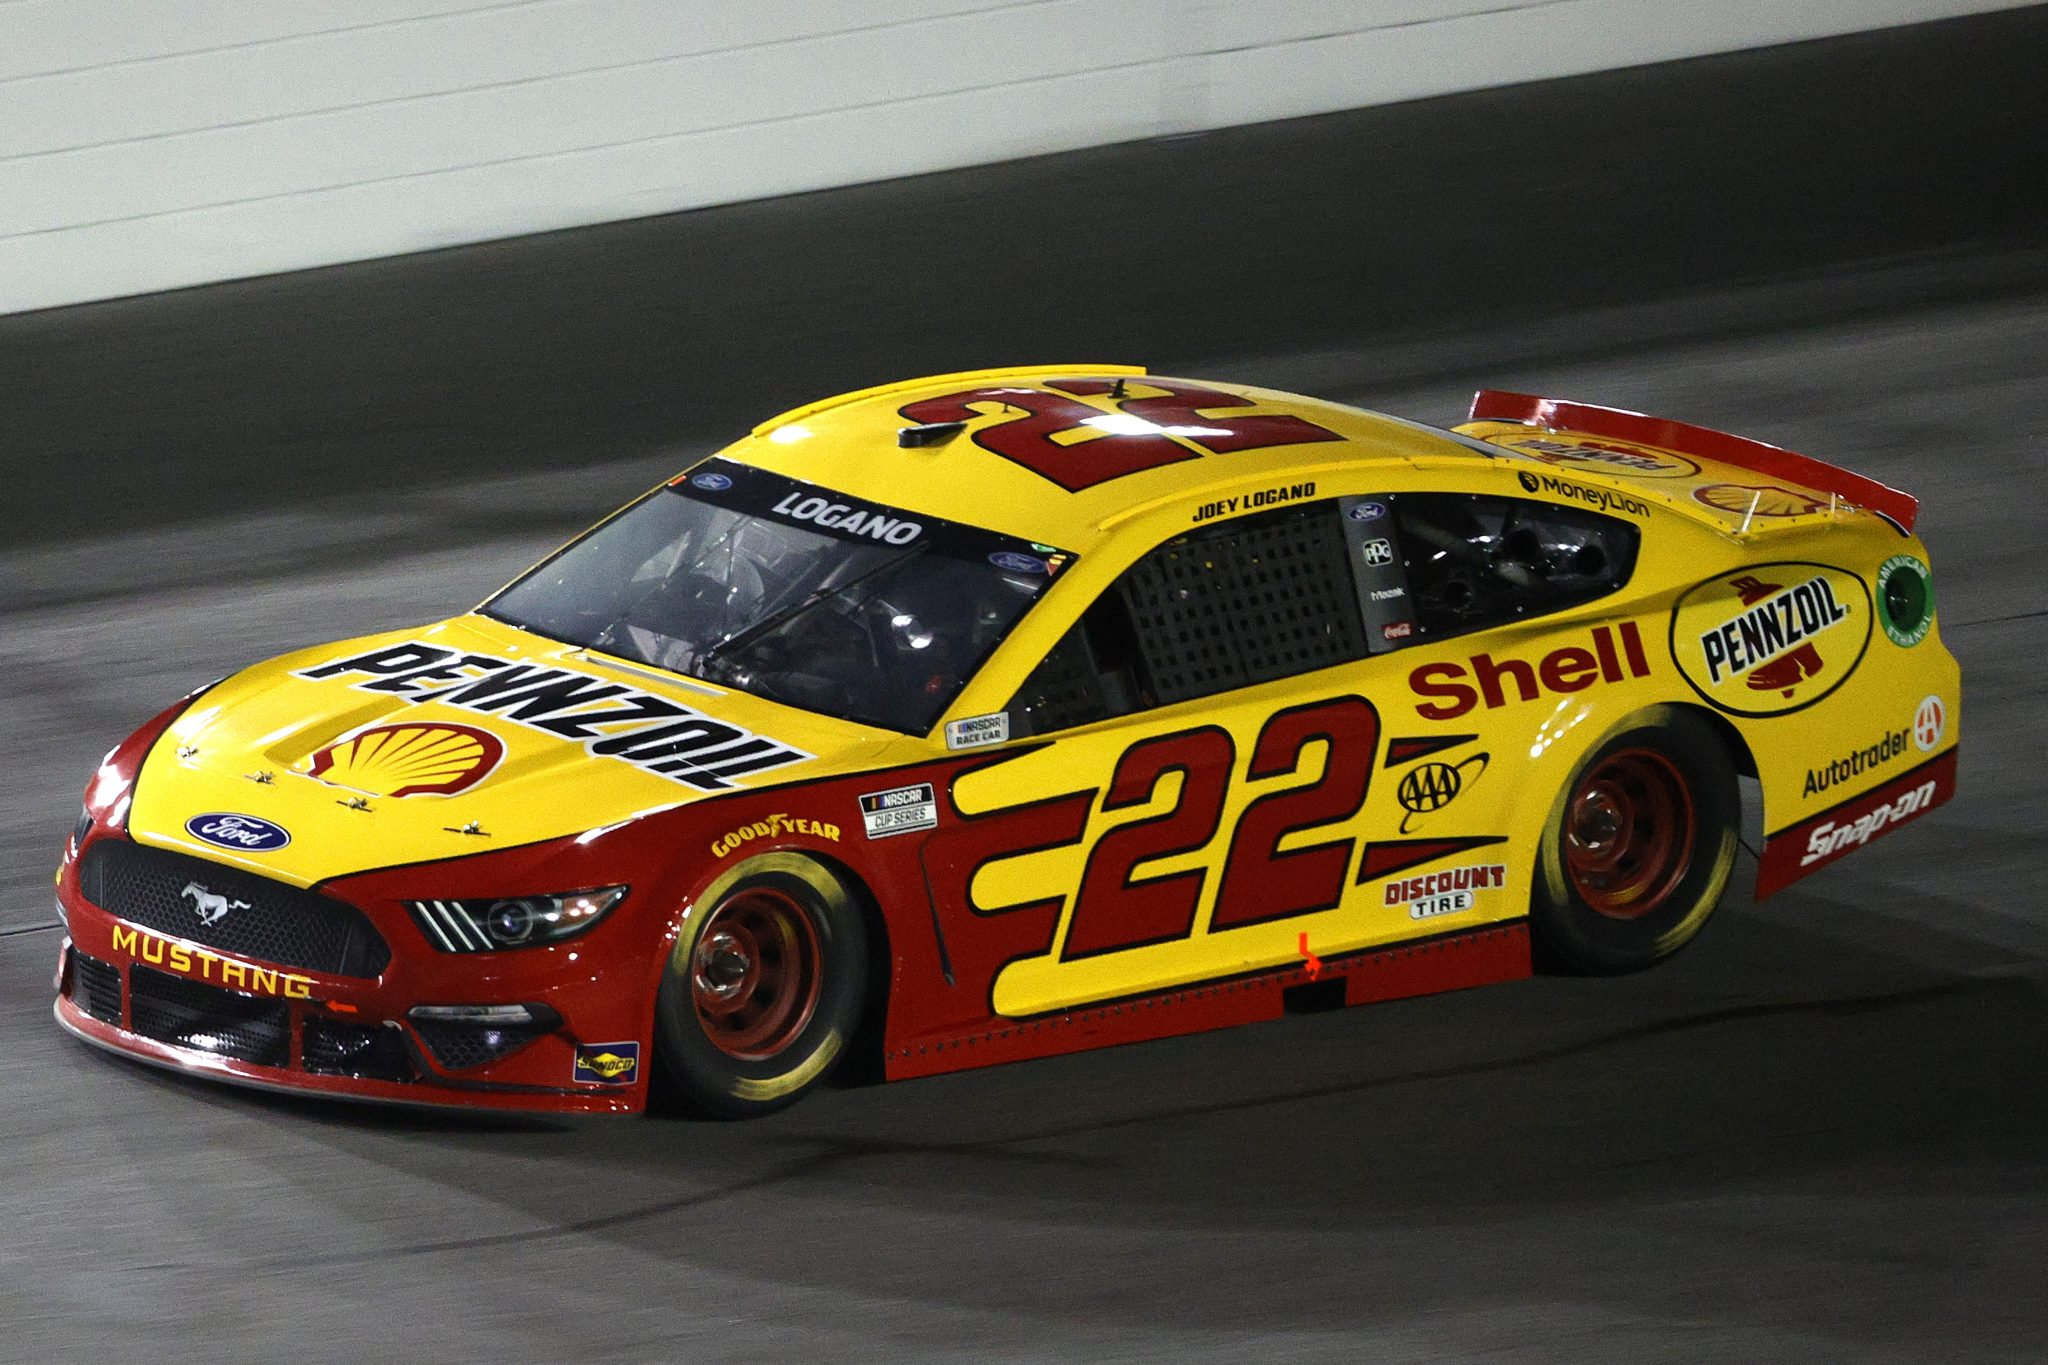 DAYTONA BEACH, FLORIDA - FEBRUARY 09: Joey Logano, driver of the #22 Shell Pennzoil Ford, drives during the NASCAR Cup Series Busch Clash at Daytona at Daytona International Speedway on February 09, 2021 in Daytona Beach, Florida. (Photo by Chris Graythen/Getty Images) | Getty Images